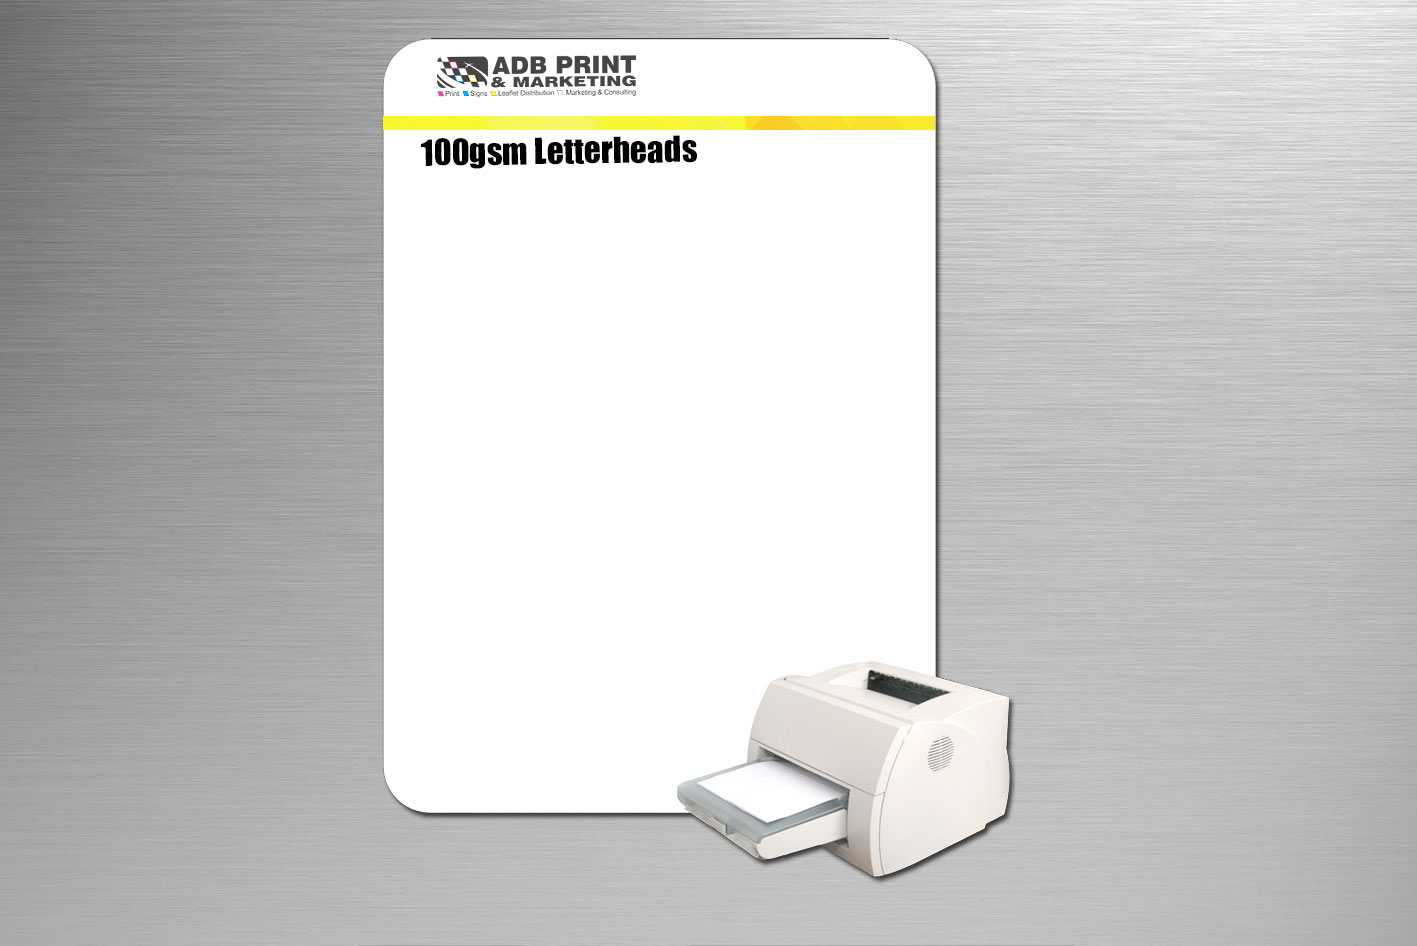 https://www.samedayprintgoldcoast.com.au/images/products_gallery_images/Product_displaay_letterhead.jpg